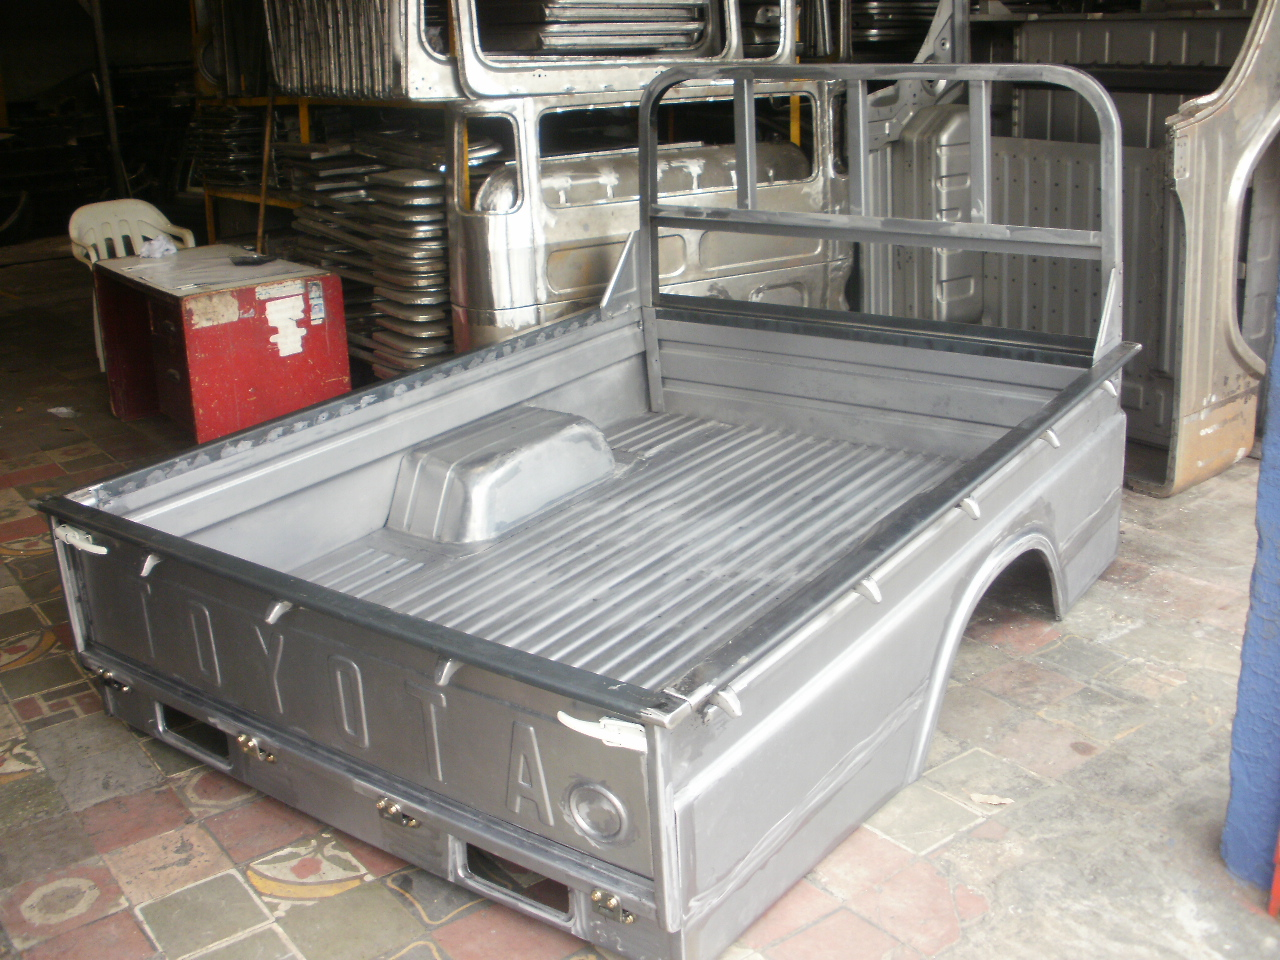 Truck Beds For Sale >> For Sale: - FJ45 Pickup Bed - Potential Group Buy | IH8MUD Forum